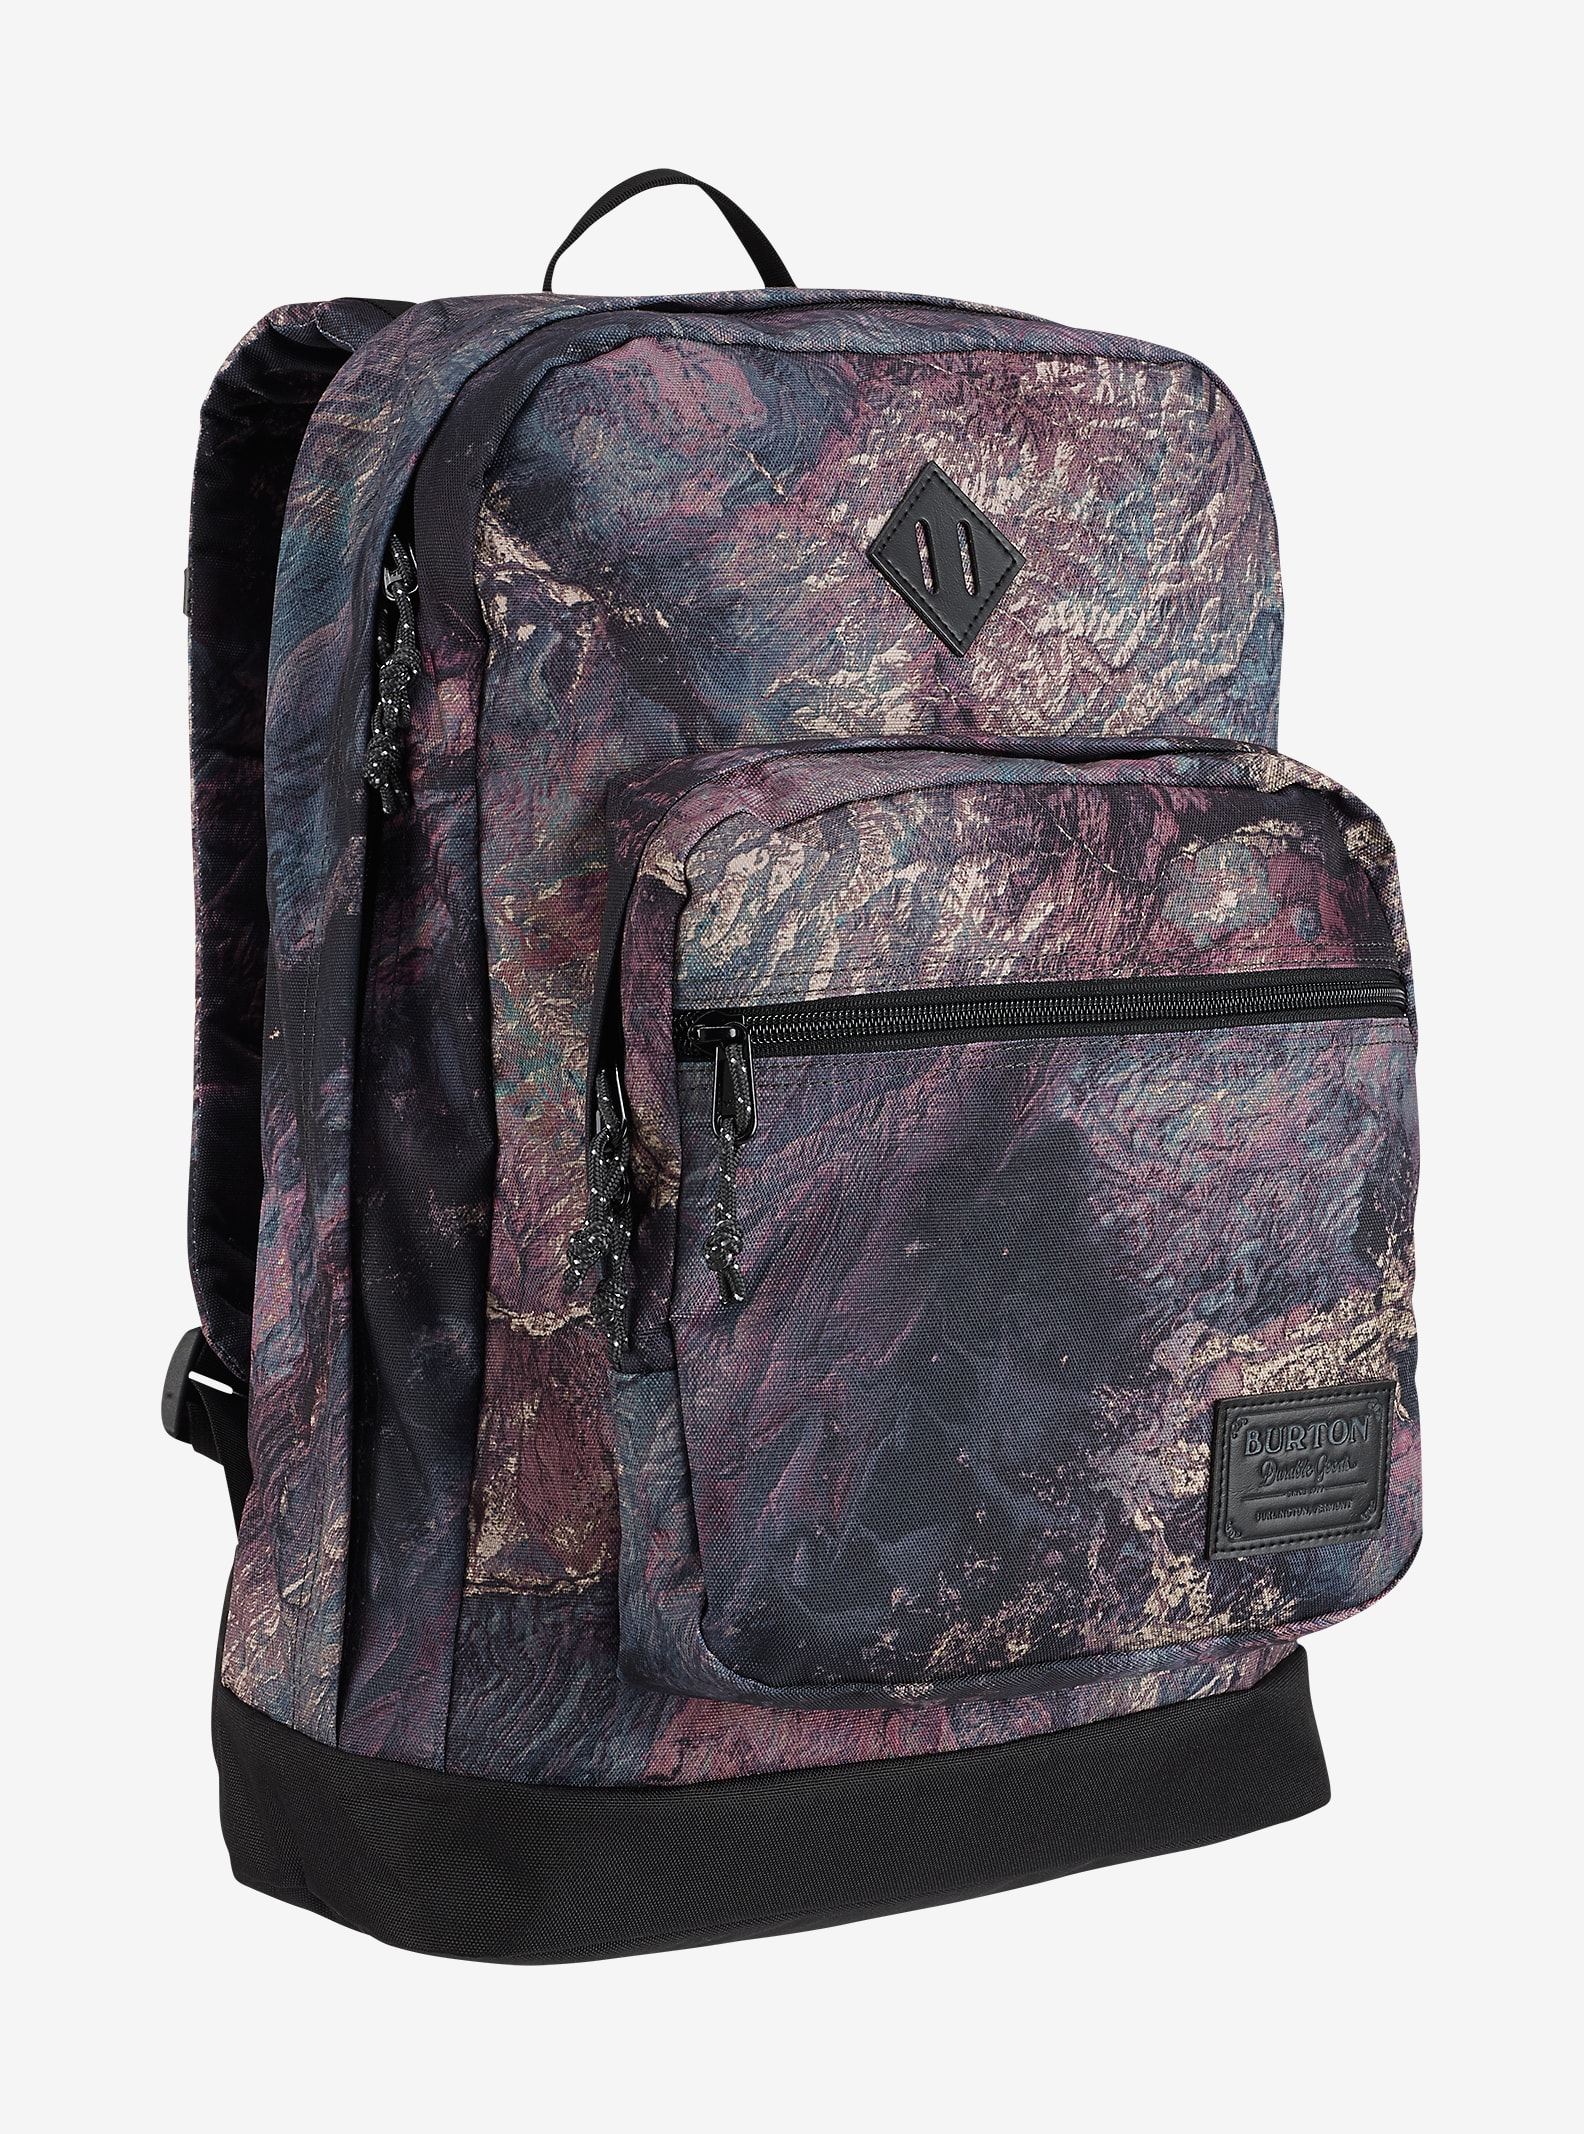 Burton Big Kettle Backpack shown in Earth Print